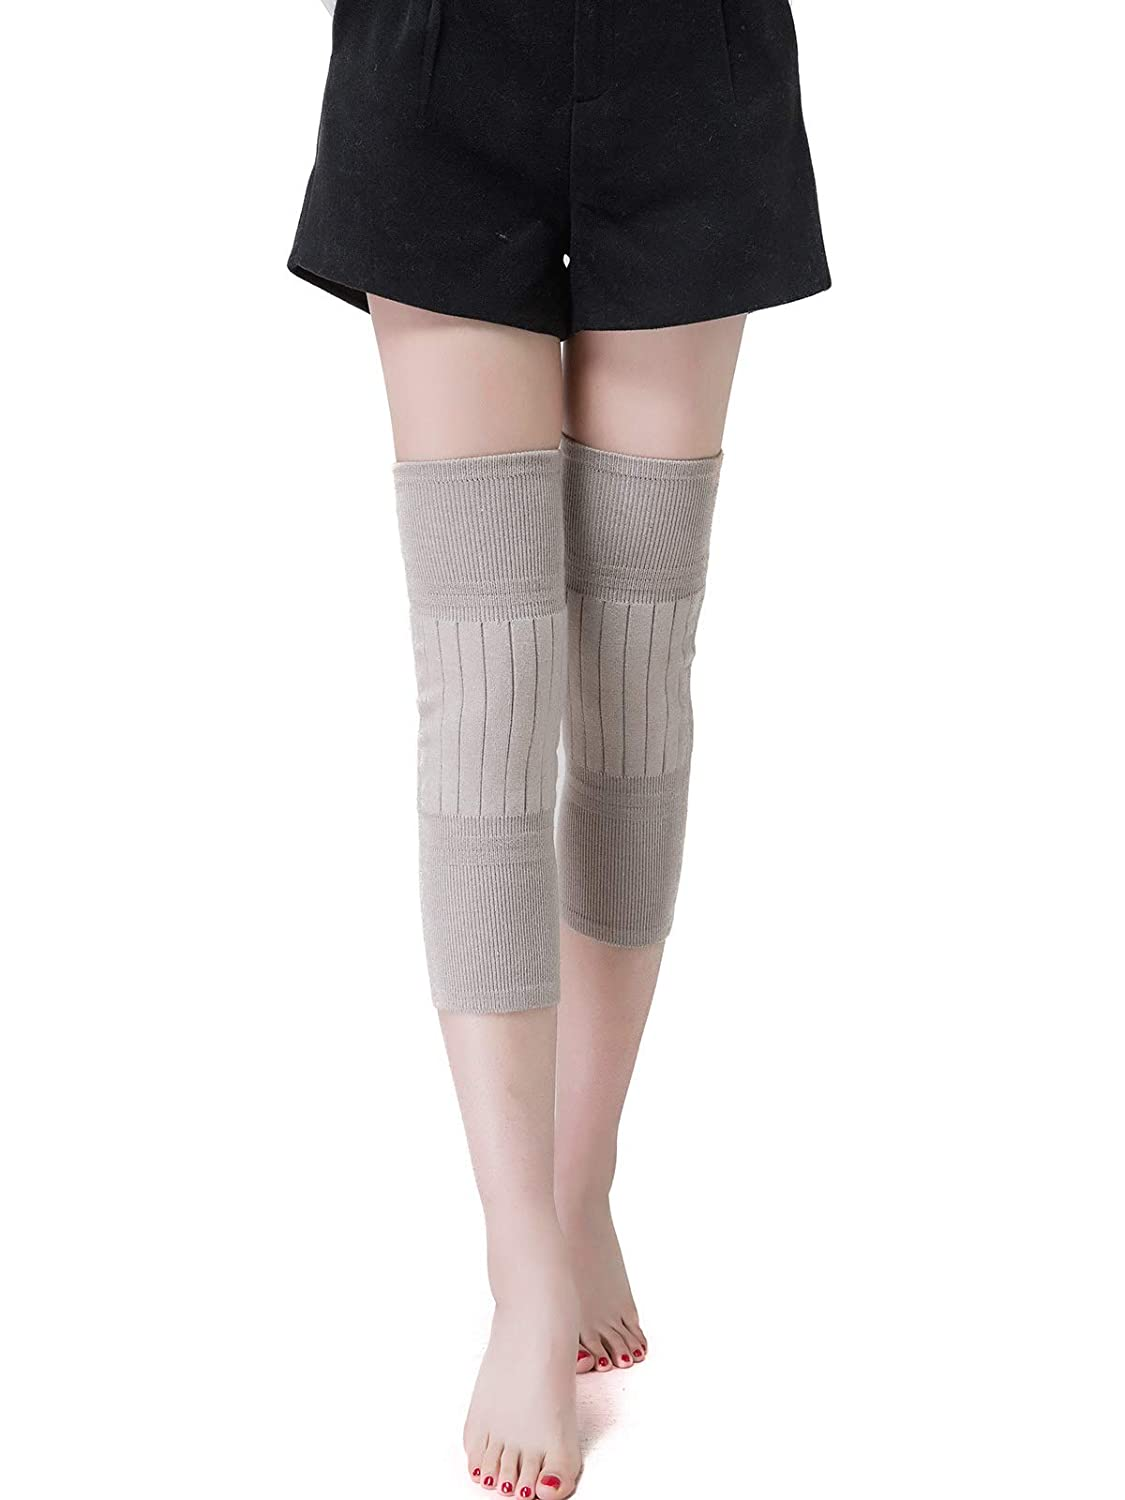 Flammi Thermal Knee Warmers Cashmere Knit Knee Support Mid-Long Extra Thick Knee Sleeves Men Women